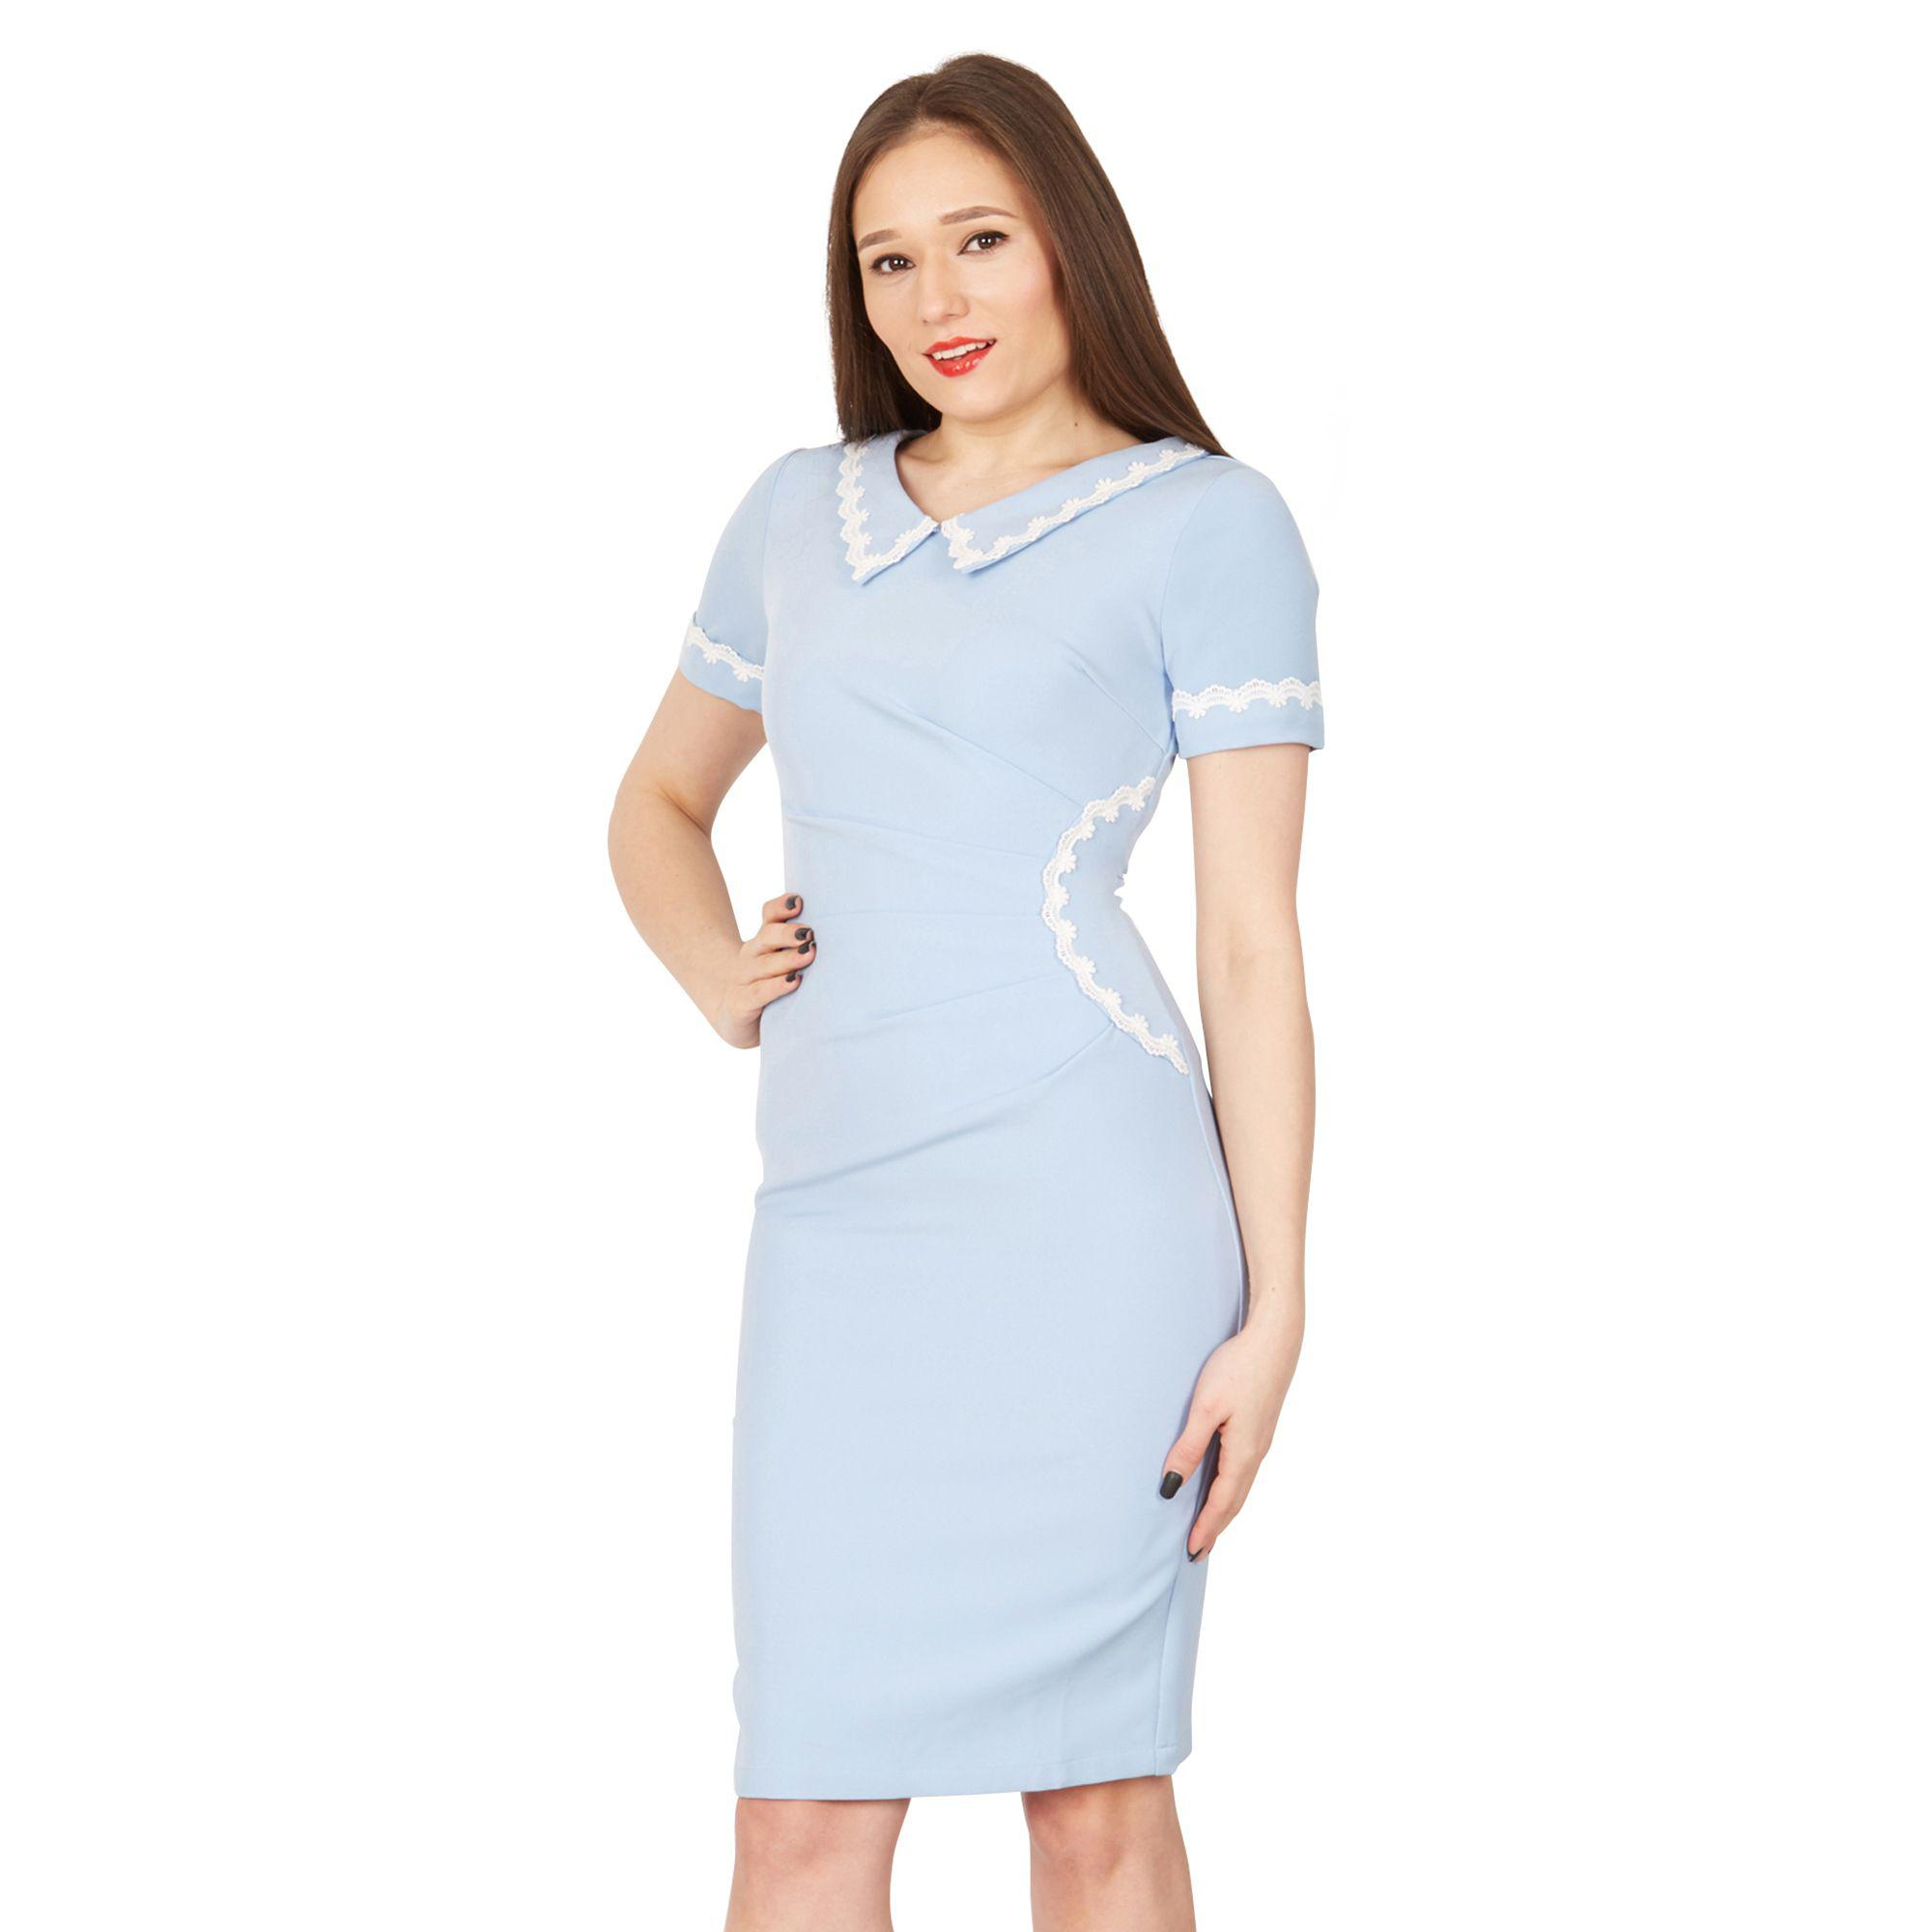 99183efad042 Jolie Moi Blue Short Sleeves Lace Trimmed Dress in Blue - Lyst